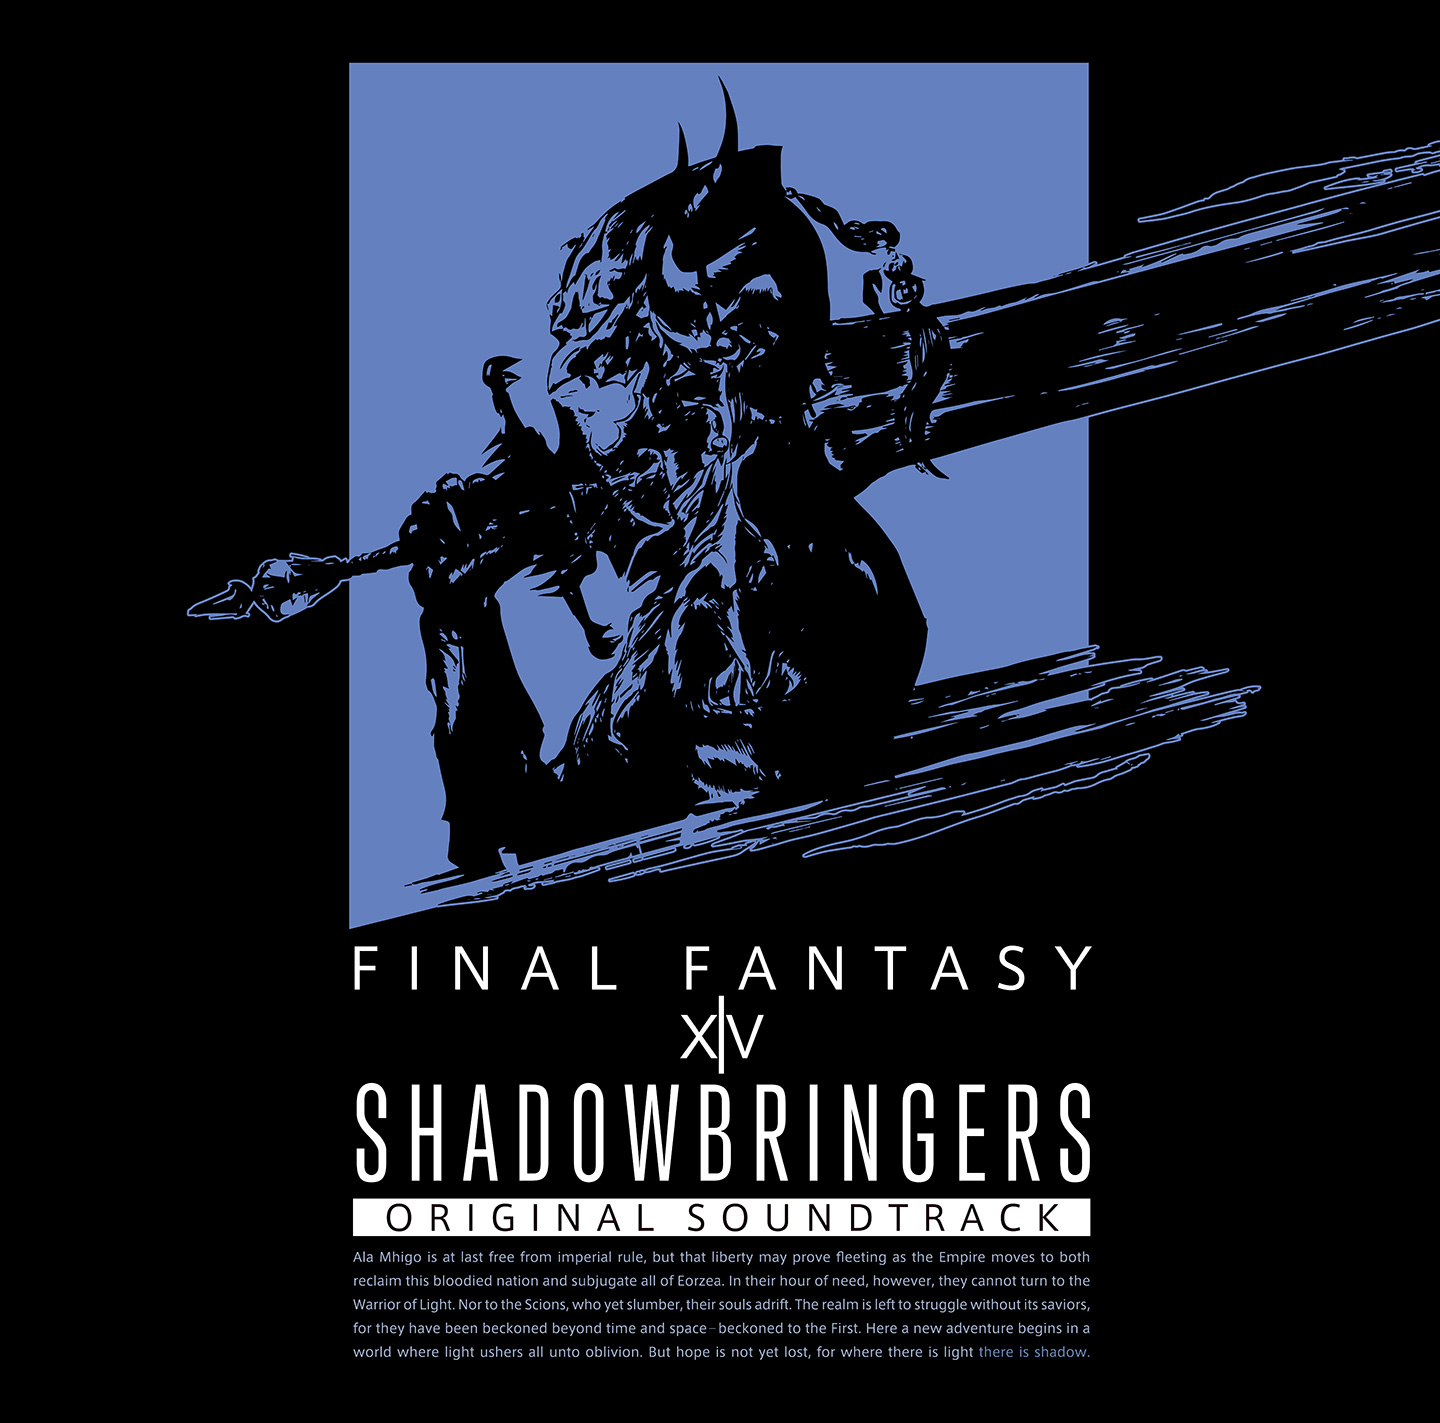 SHADOWBRINGERS: FINAL FANTASY XIV ORIGINAL SOUNDTRACK [BLU-RAY